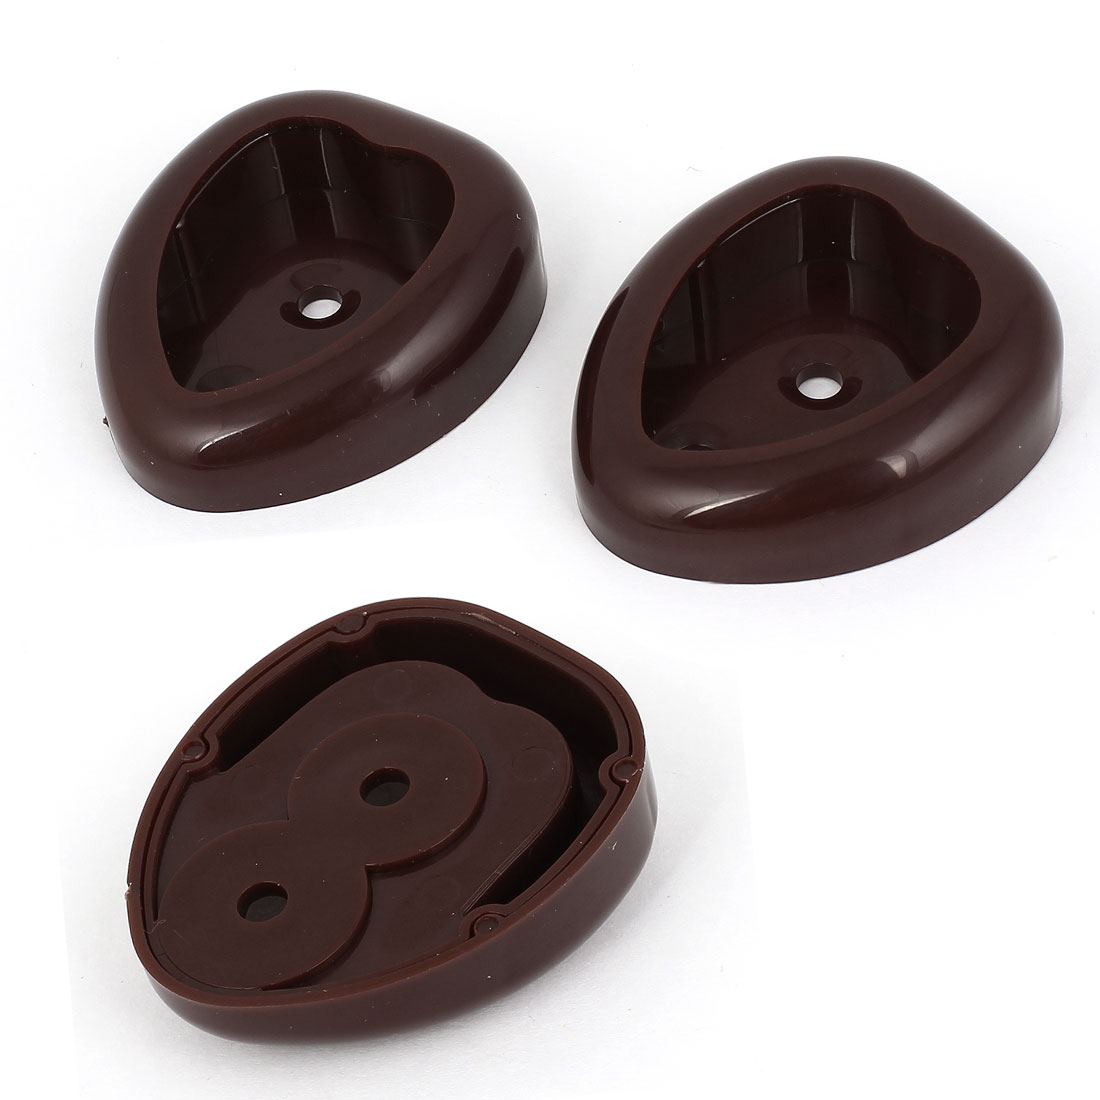 Unique Bargains Coffee Color Plastic Closet Clothes Coat Rod Pole Holder Socket Bracket 3pcs